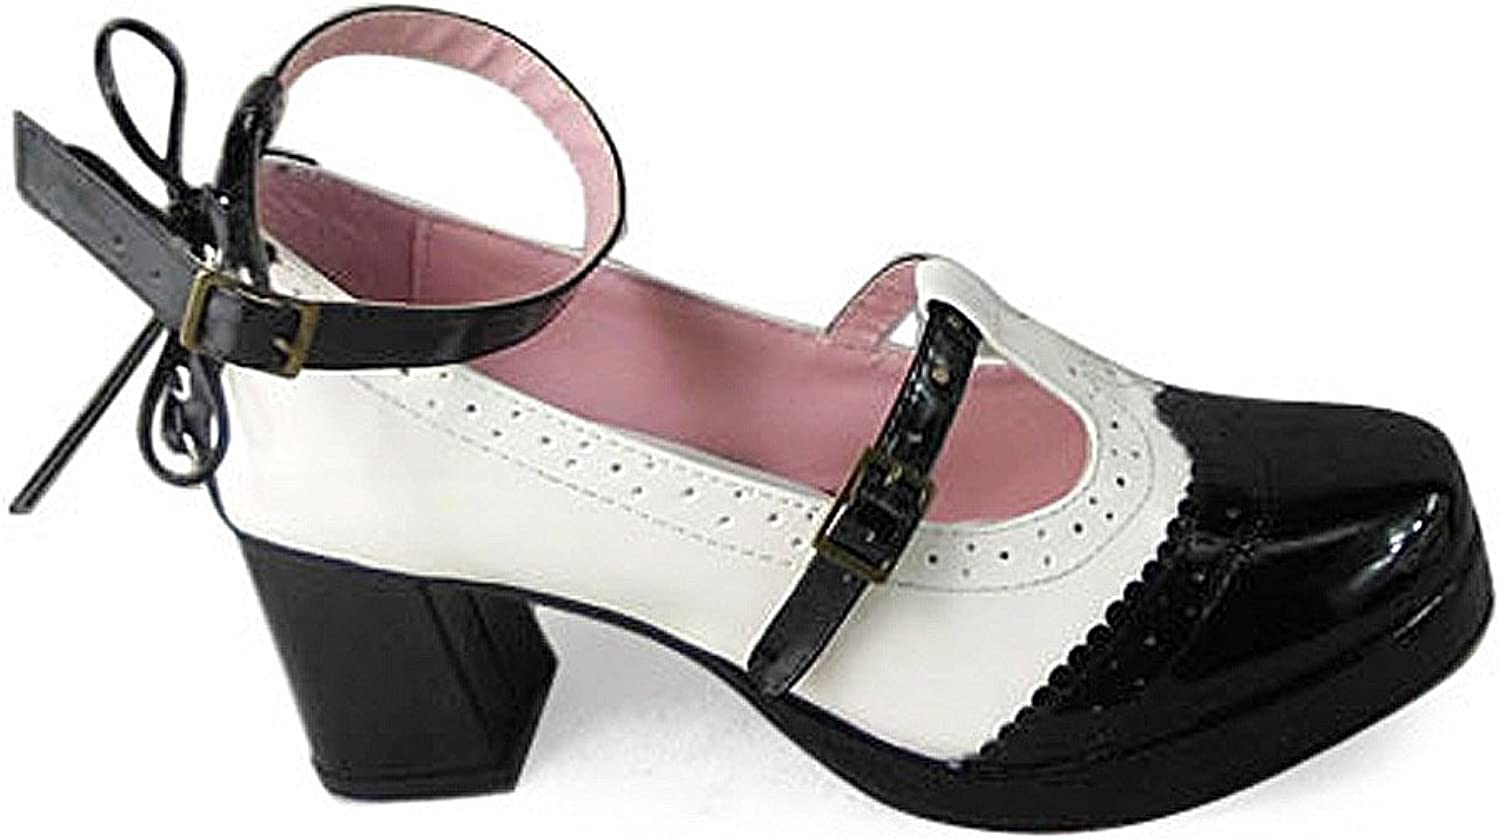 Antaina Mid Heel Black and White PU Sweet Retro Gothic Lolita Casual shoes